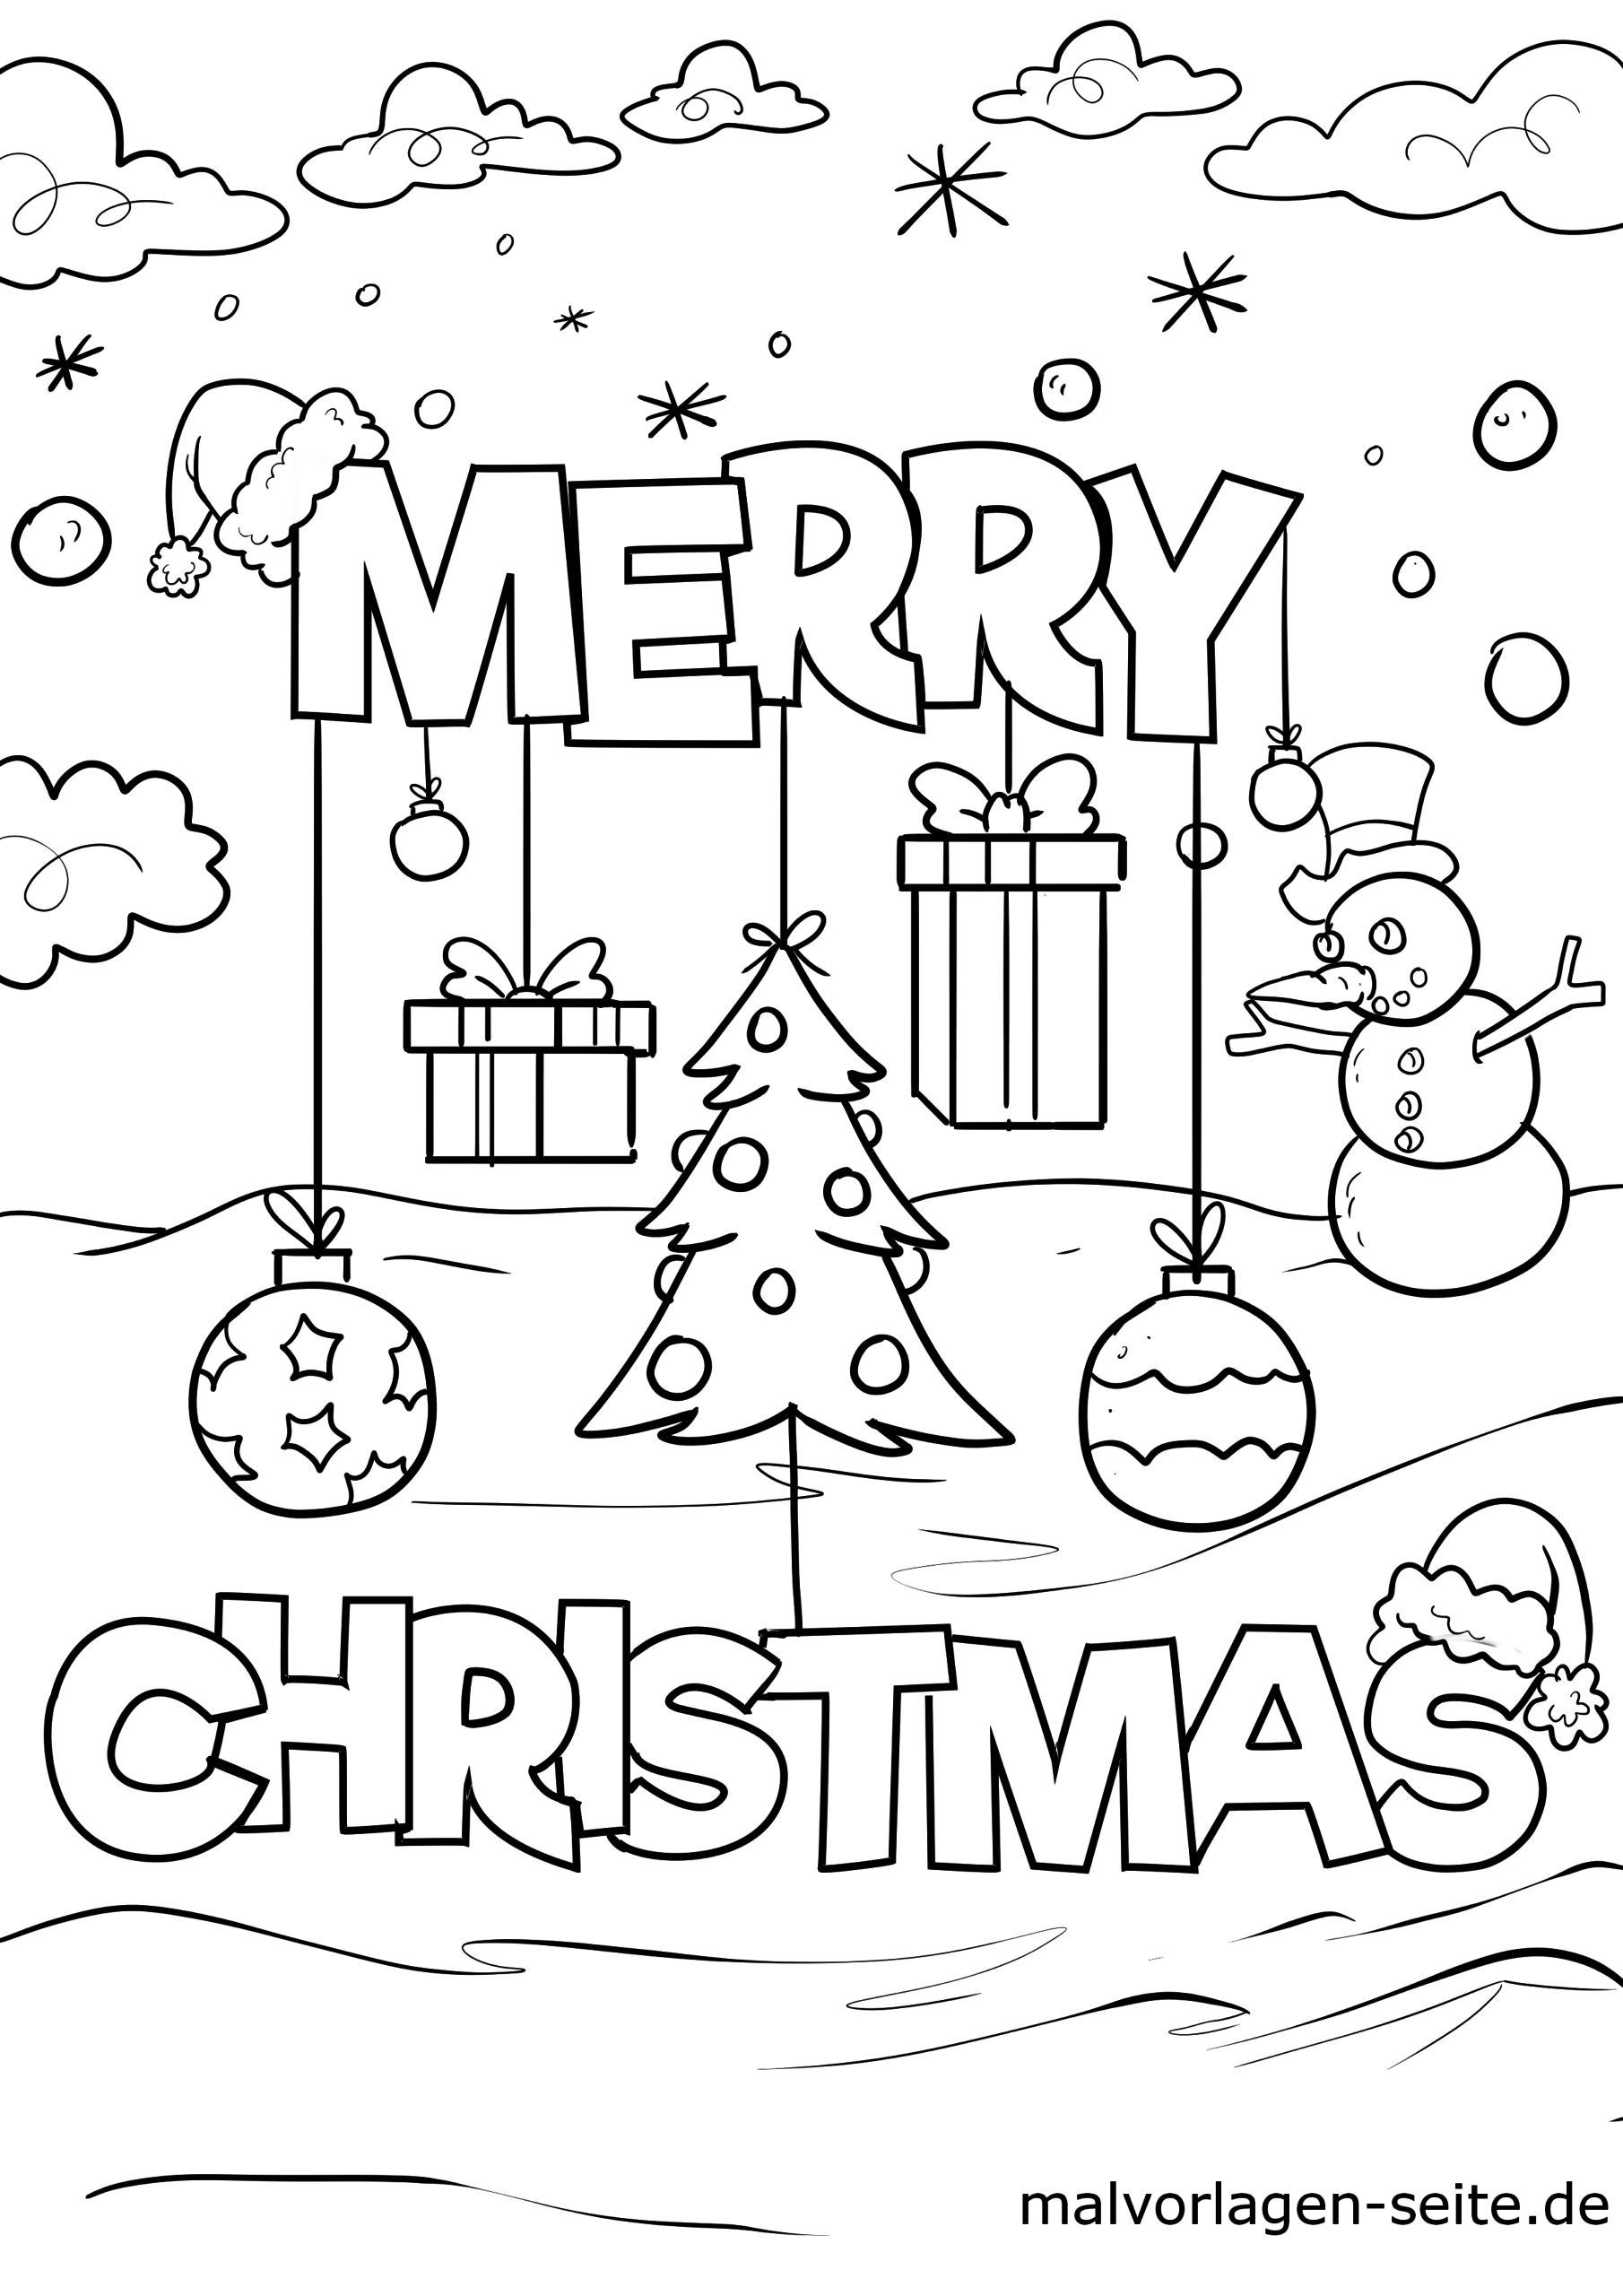 Coloring page Merry Christmas  Christmas - Free Coloring Pages